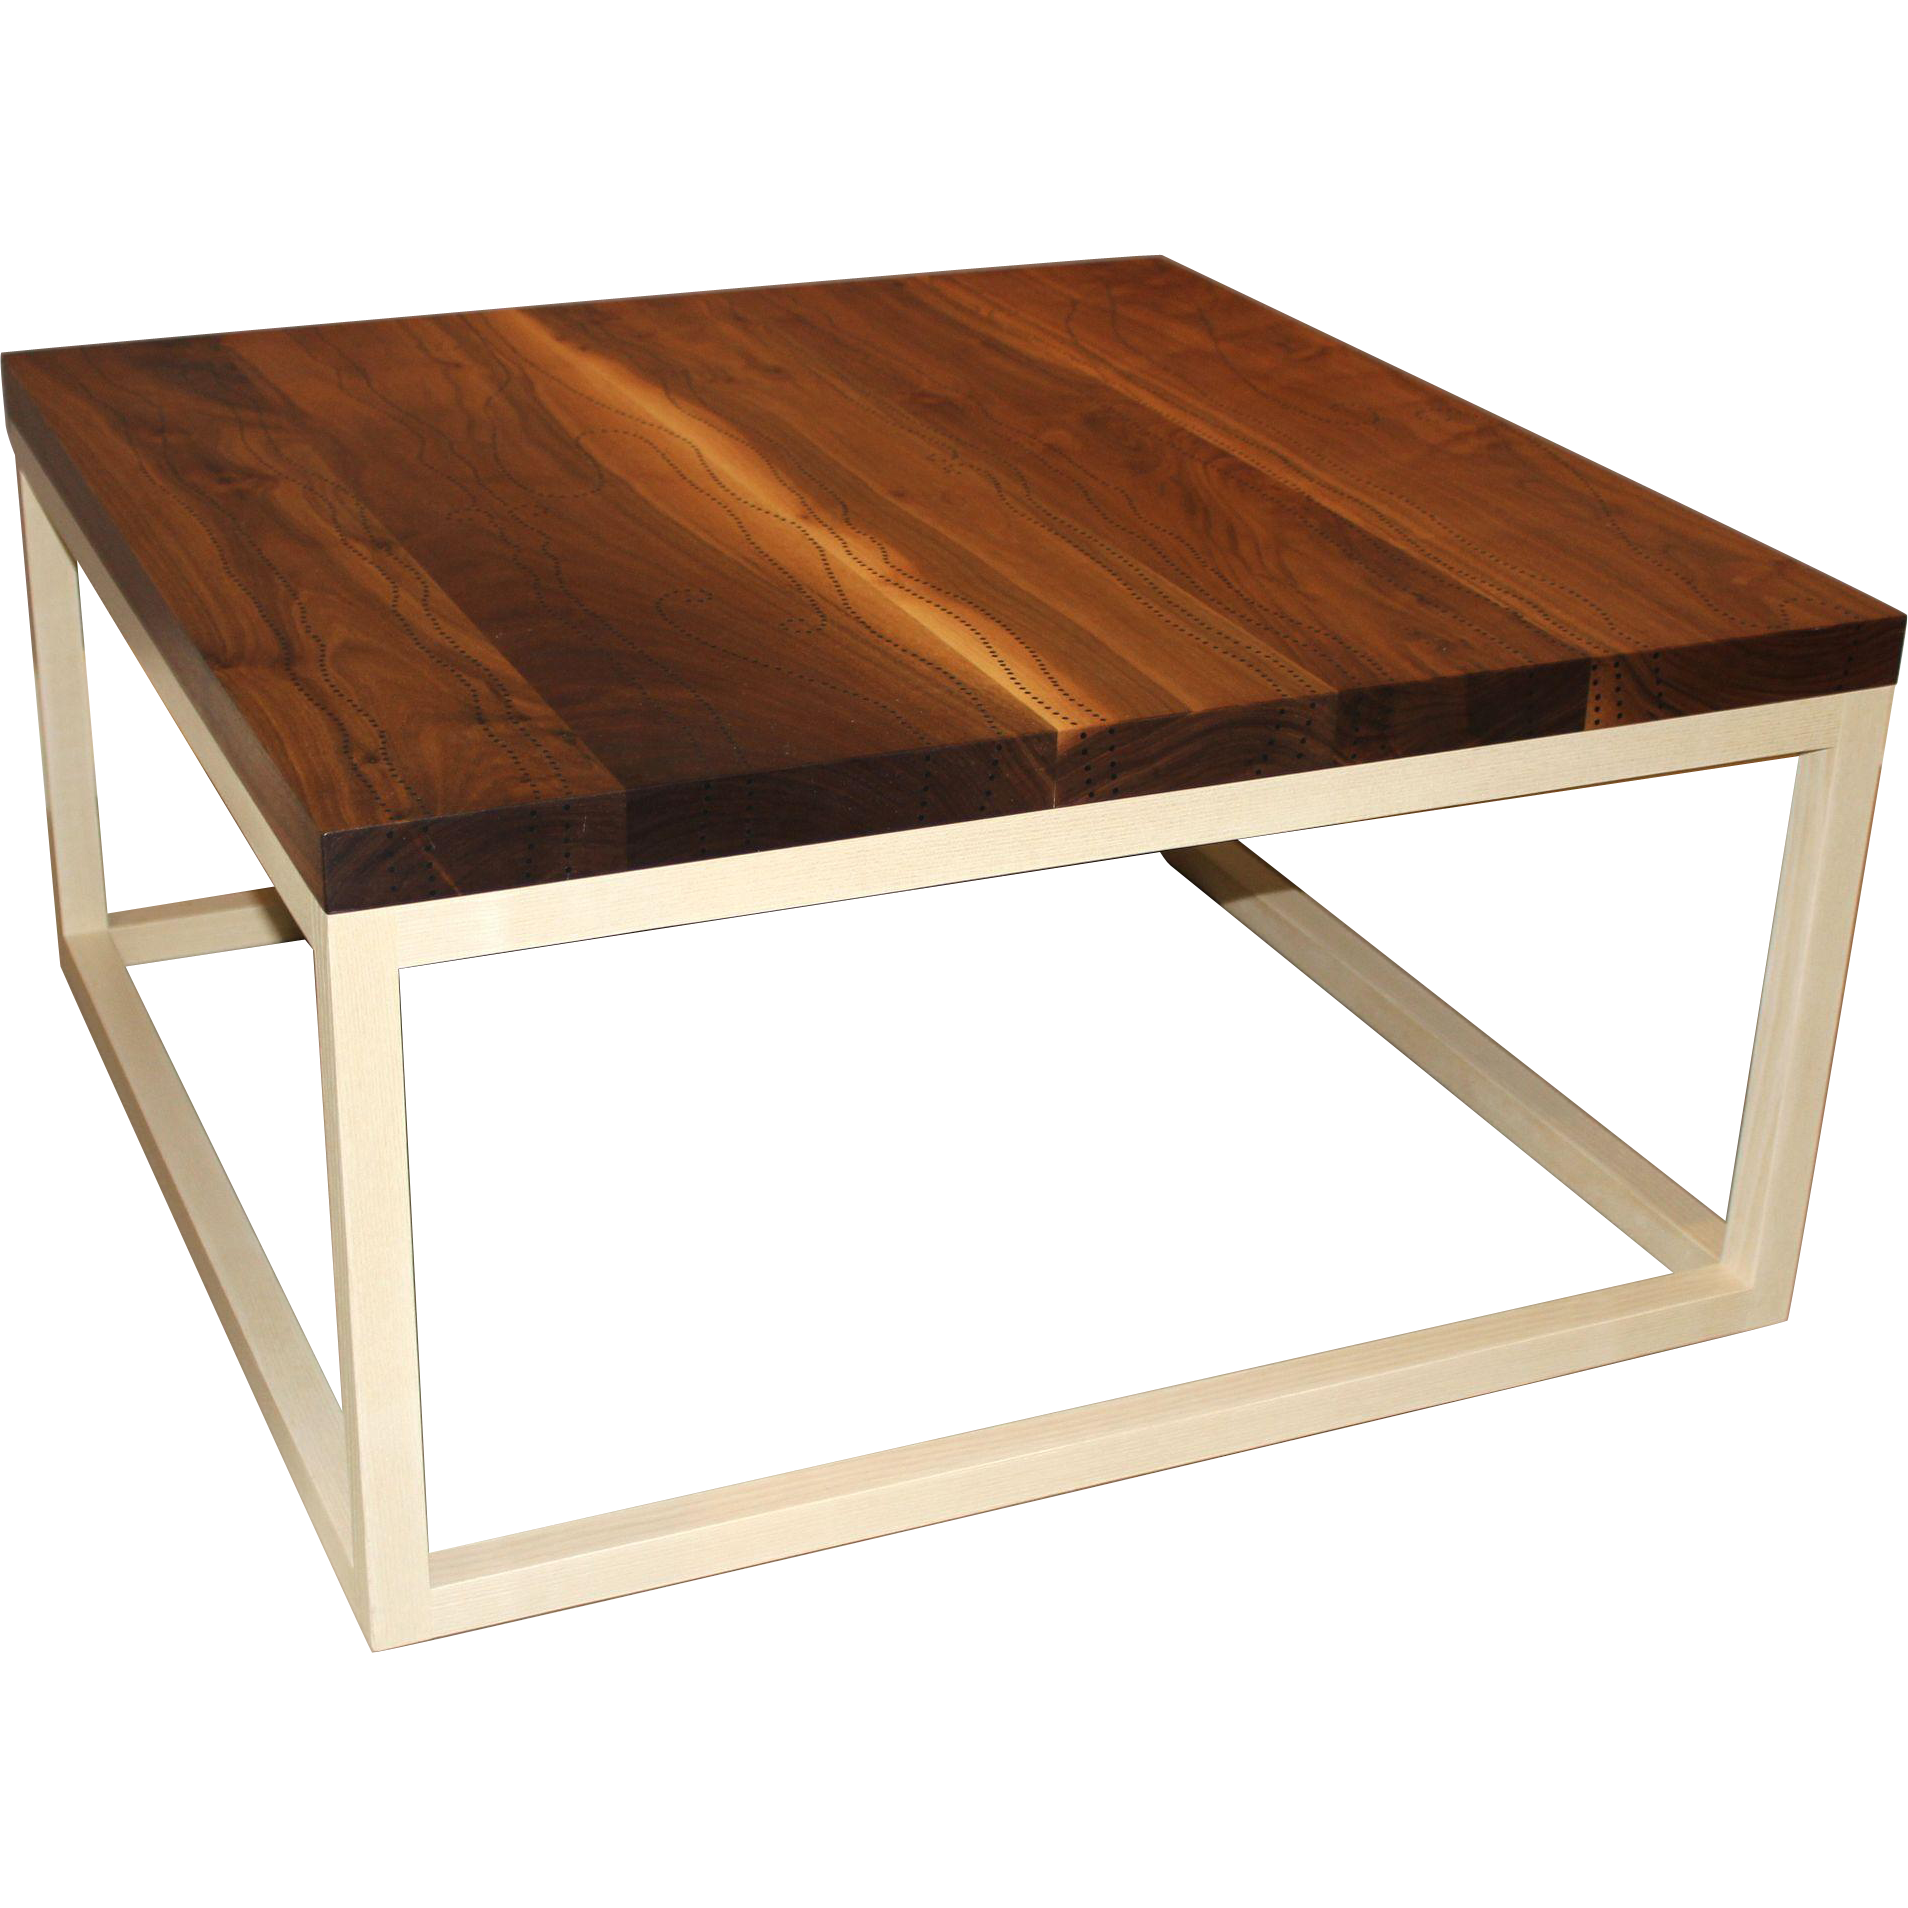 Peter Sandback Modernist Low Square Table in Bleached Walnut and Ash